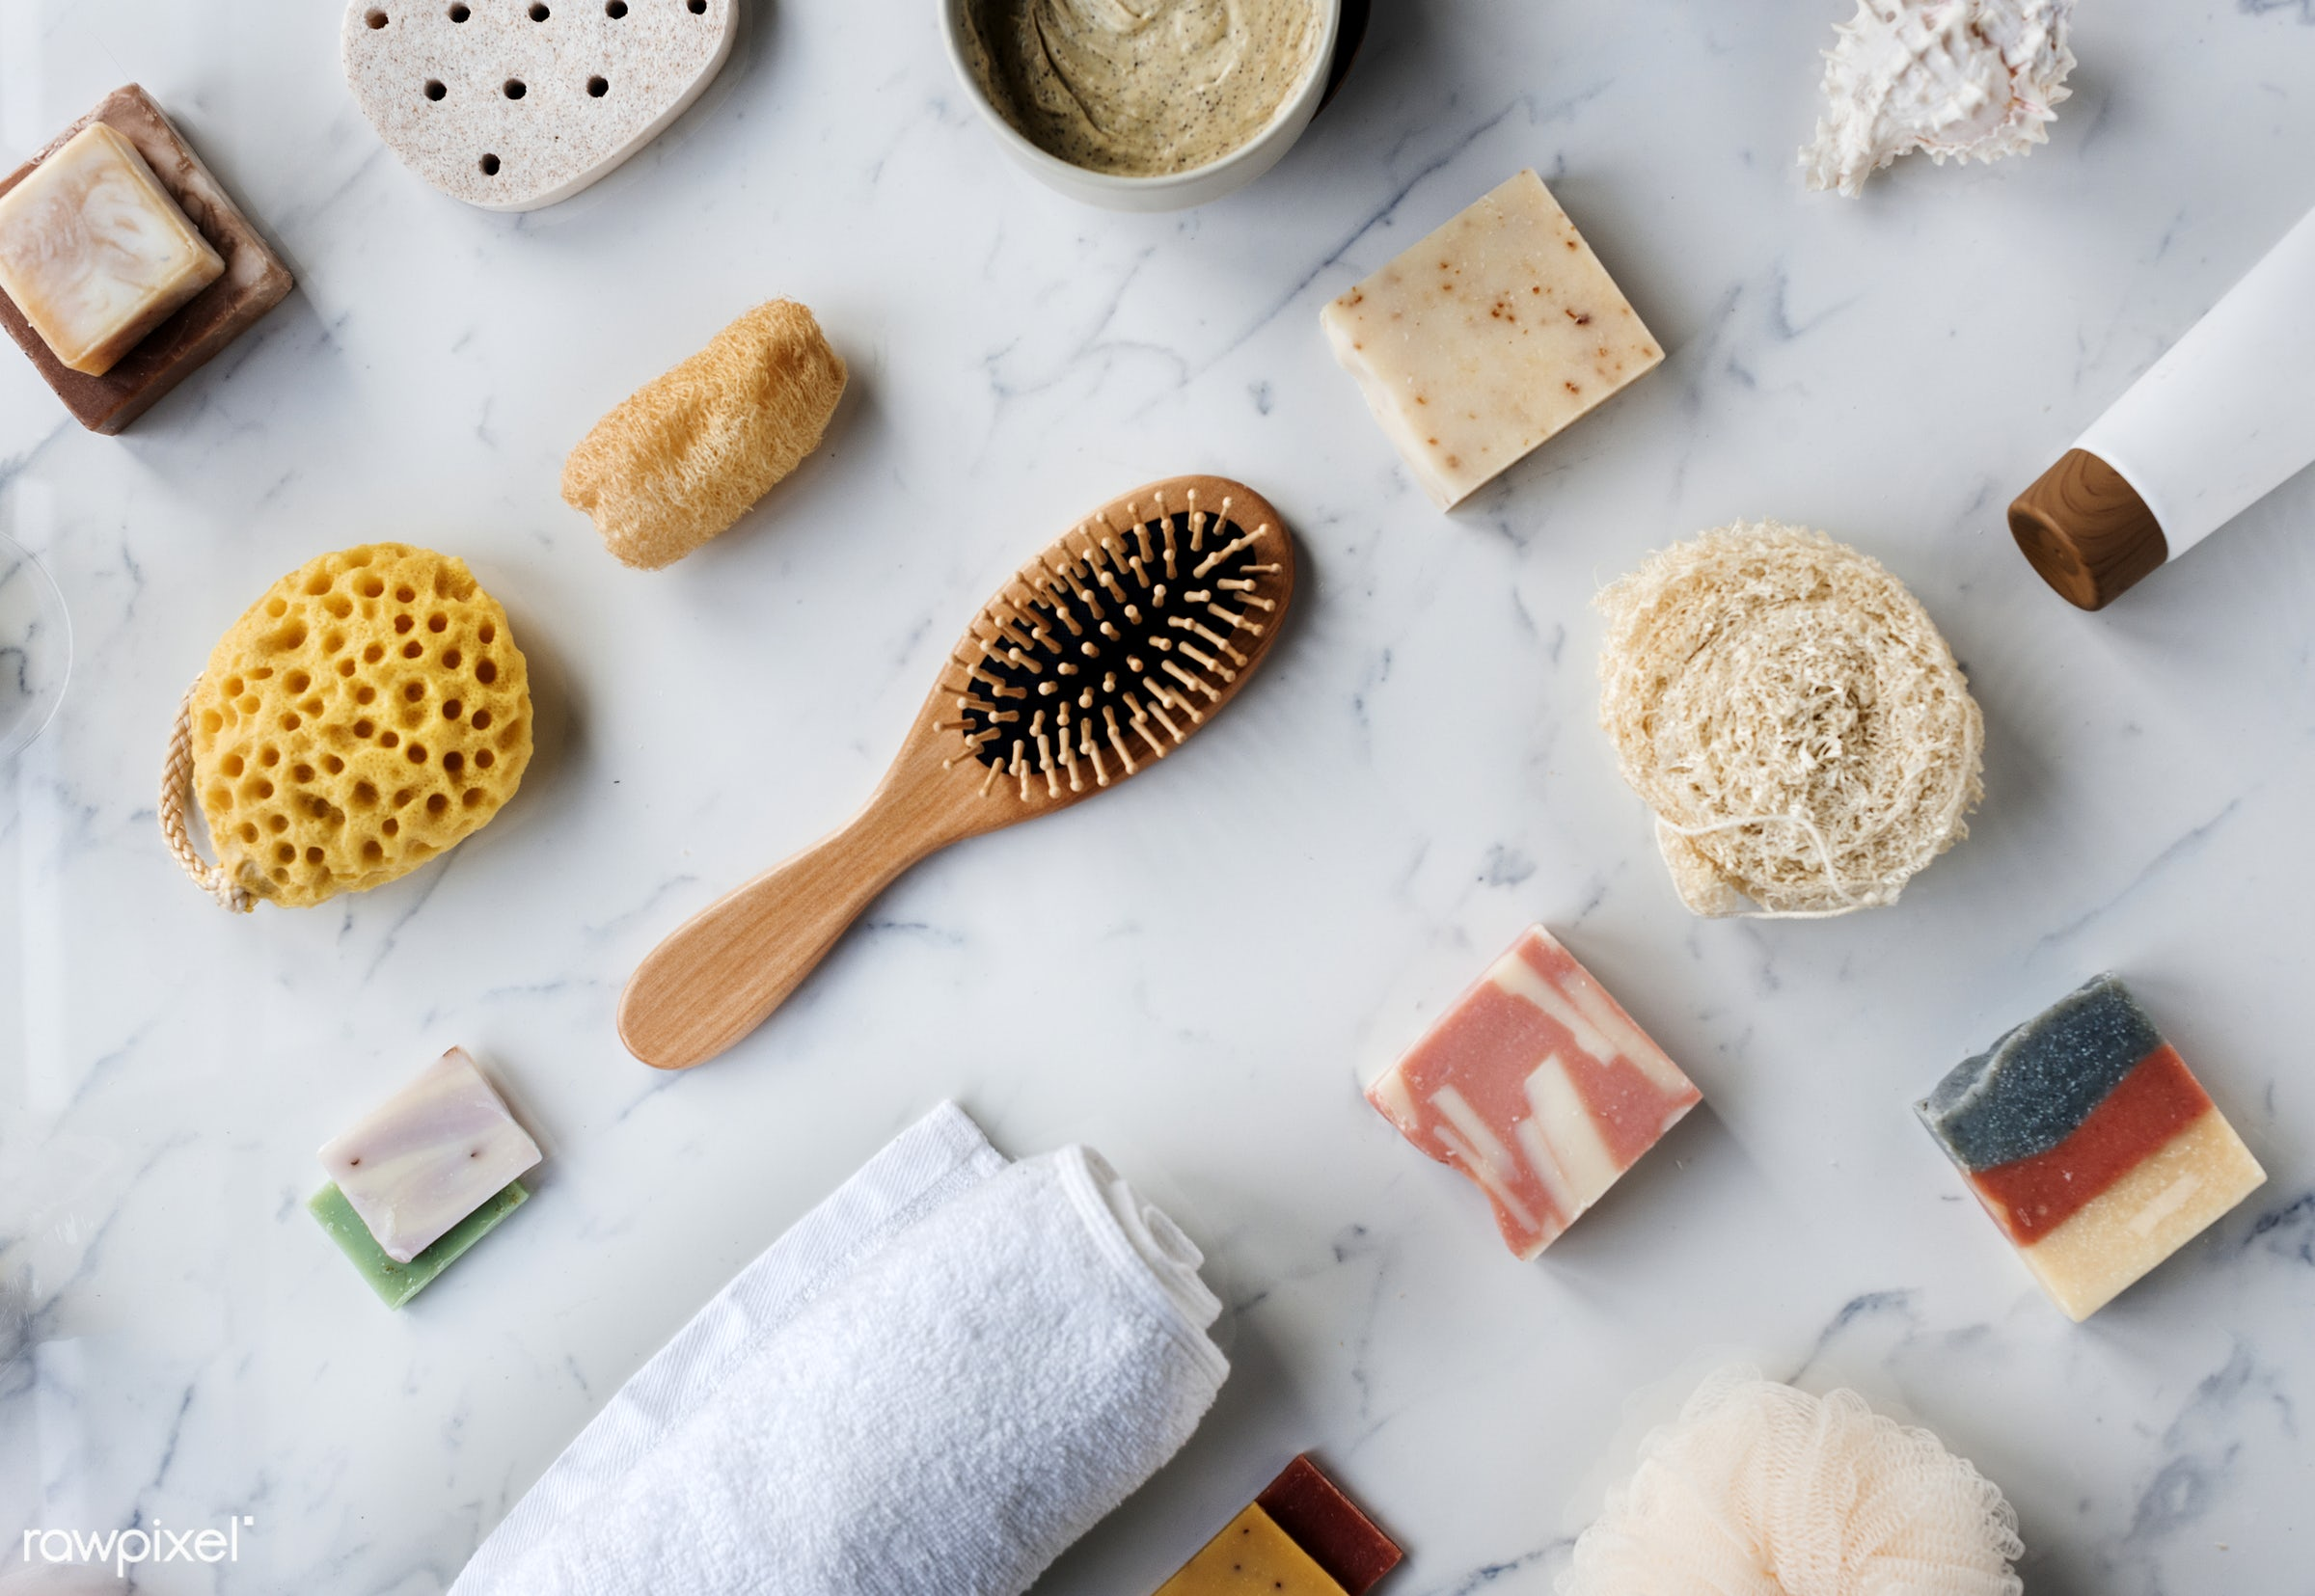 Flatlay of spa and beauty products - body, aroma, treatment, homemade, clean, fresh, wellness, care, bath, wash, products,...